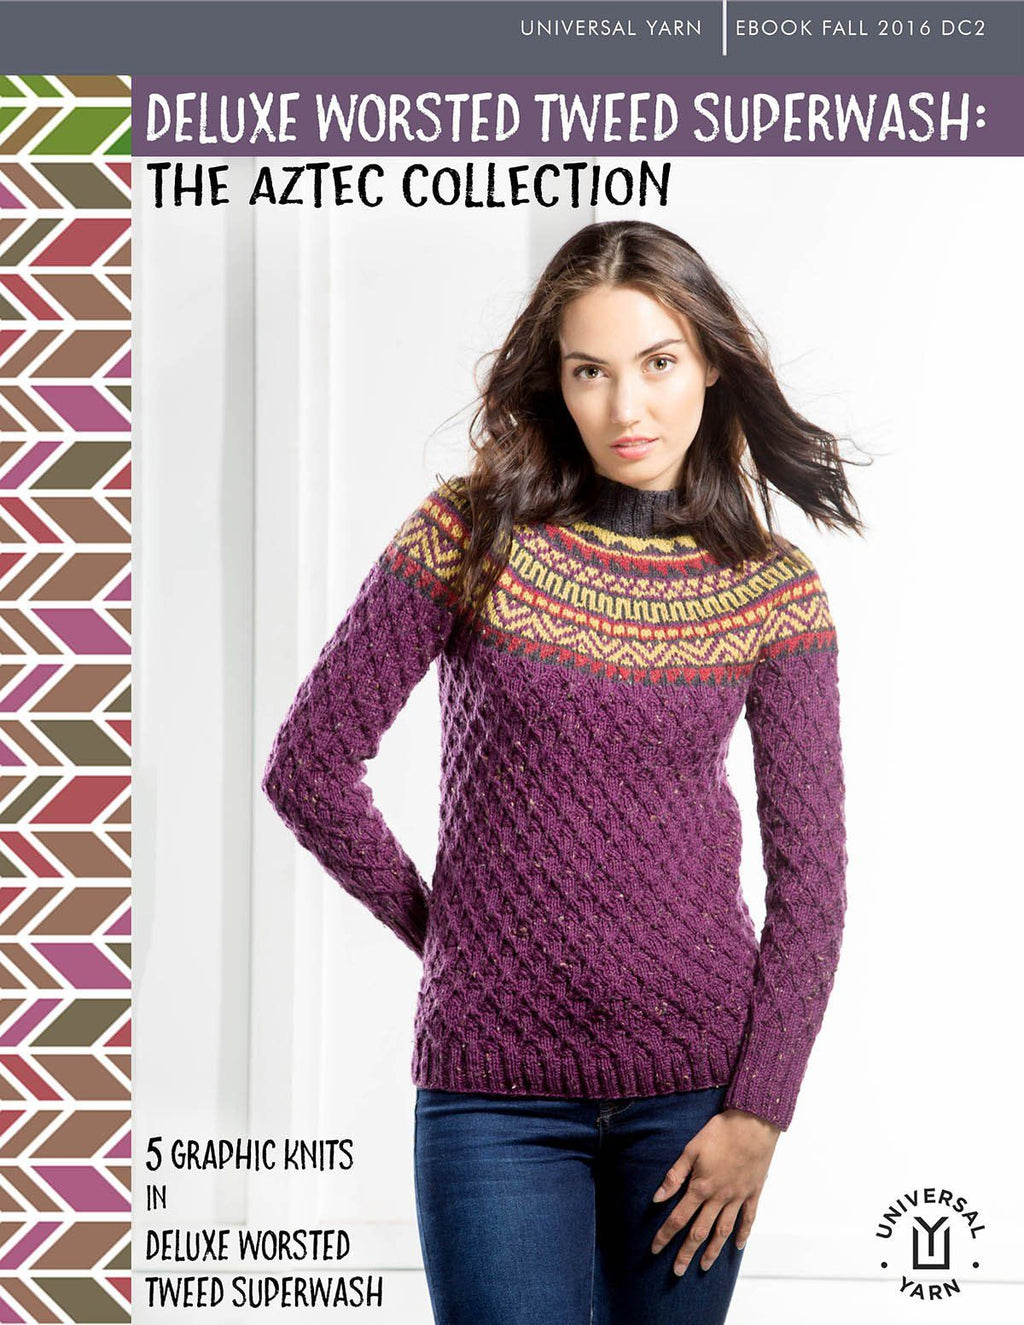 Deluxe Worsted Tweed Superwash: The Aztec Collection